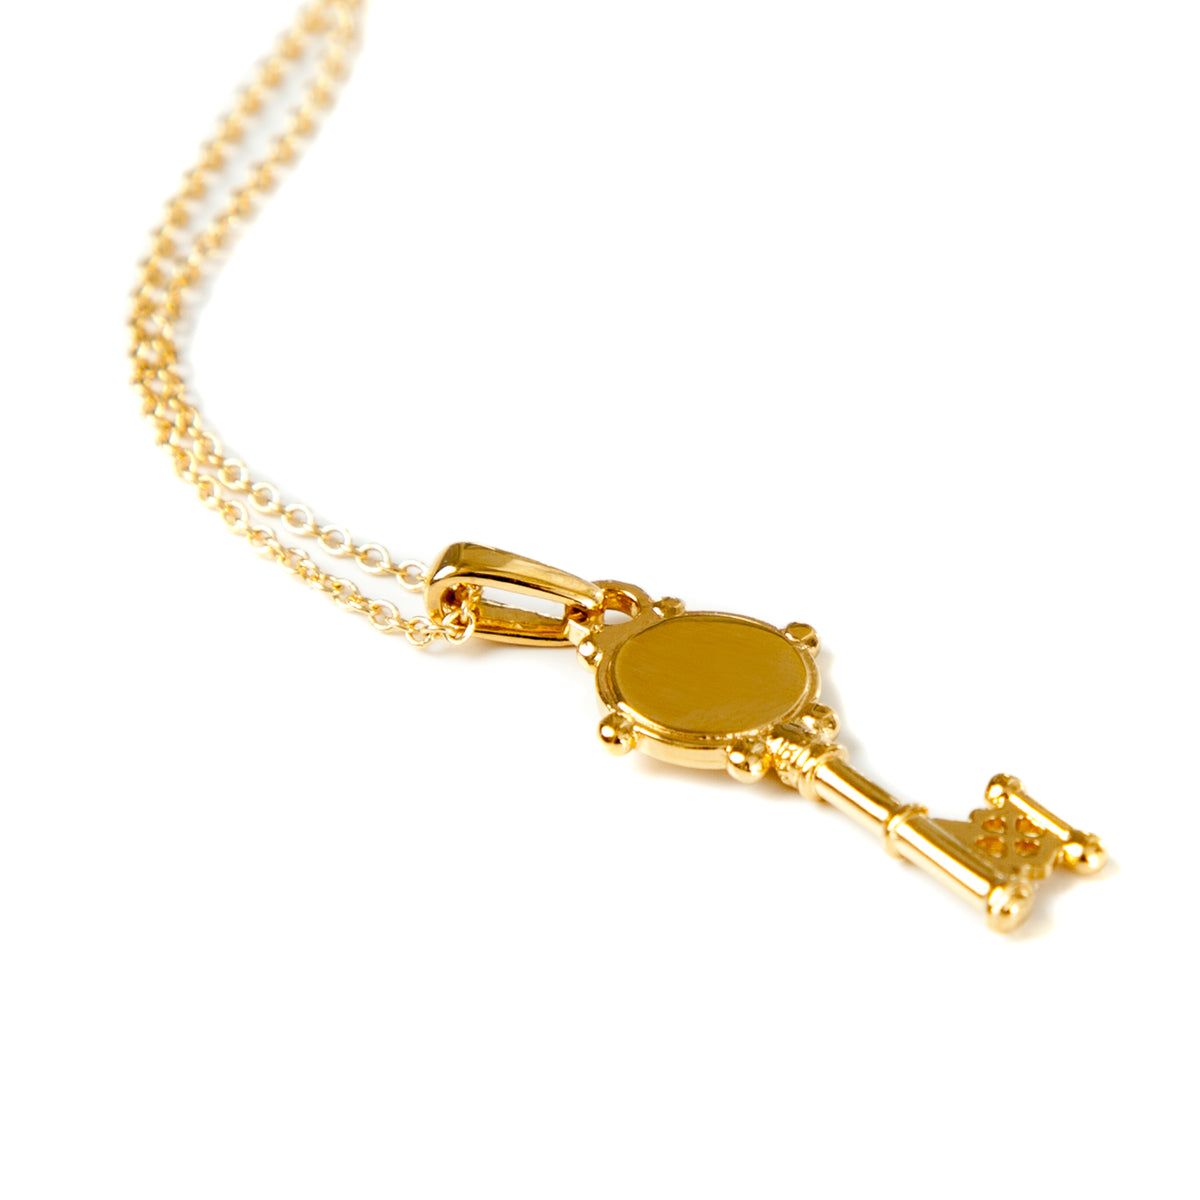 Nyck Key Necklace